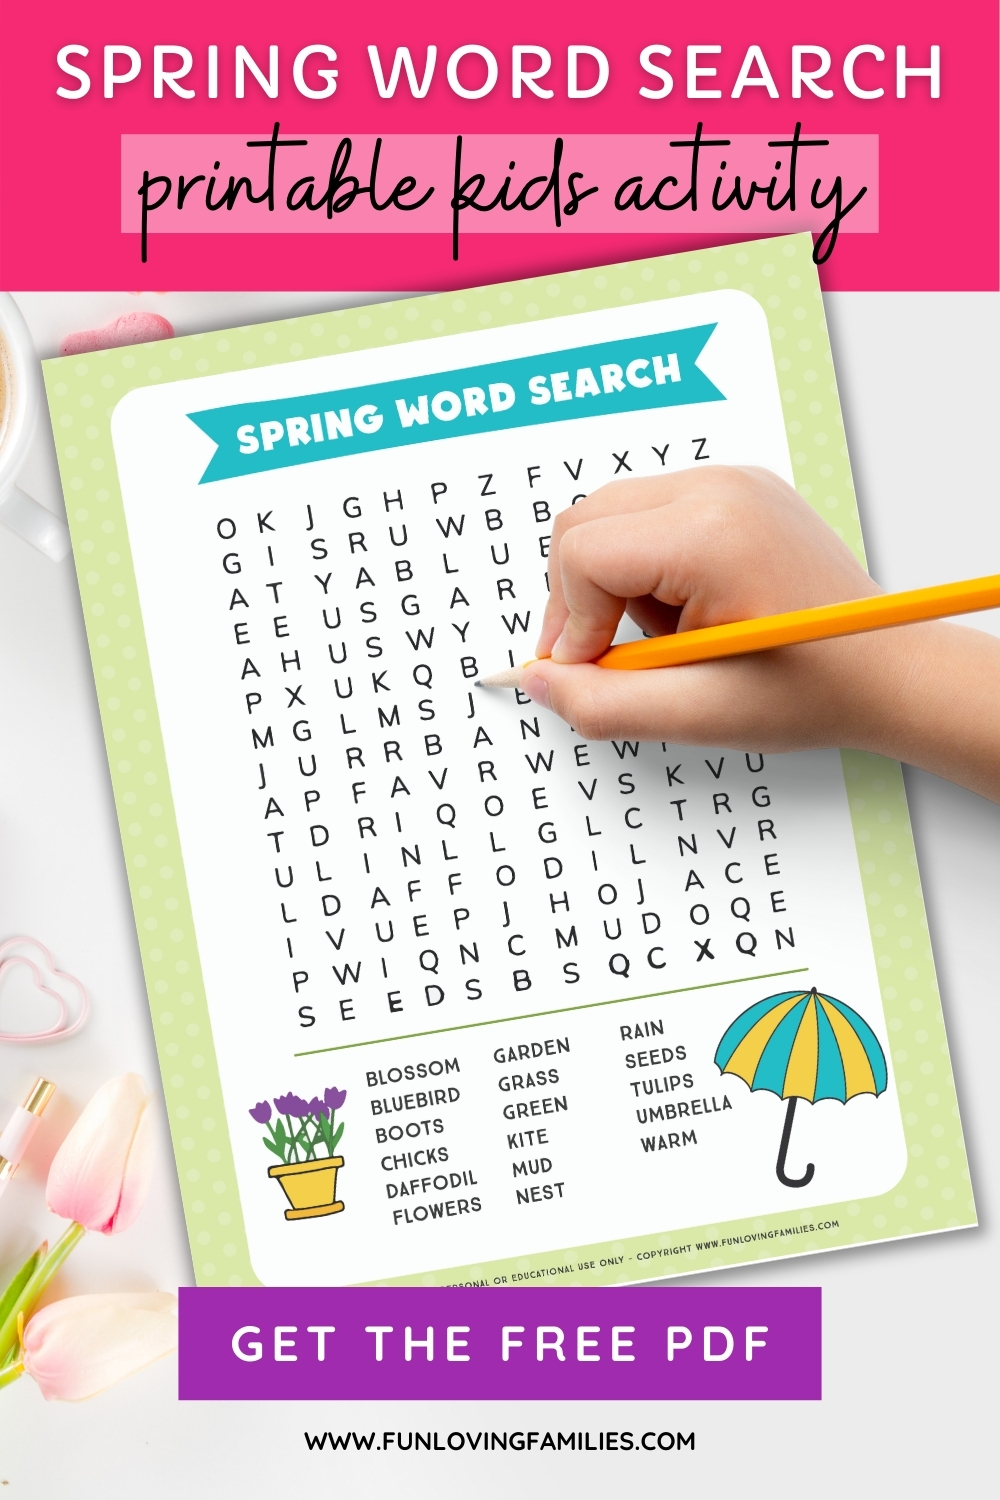 free download for spring word search sheet for kids